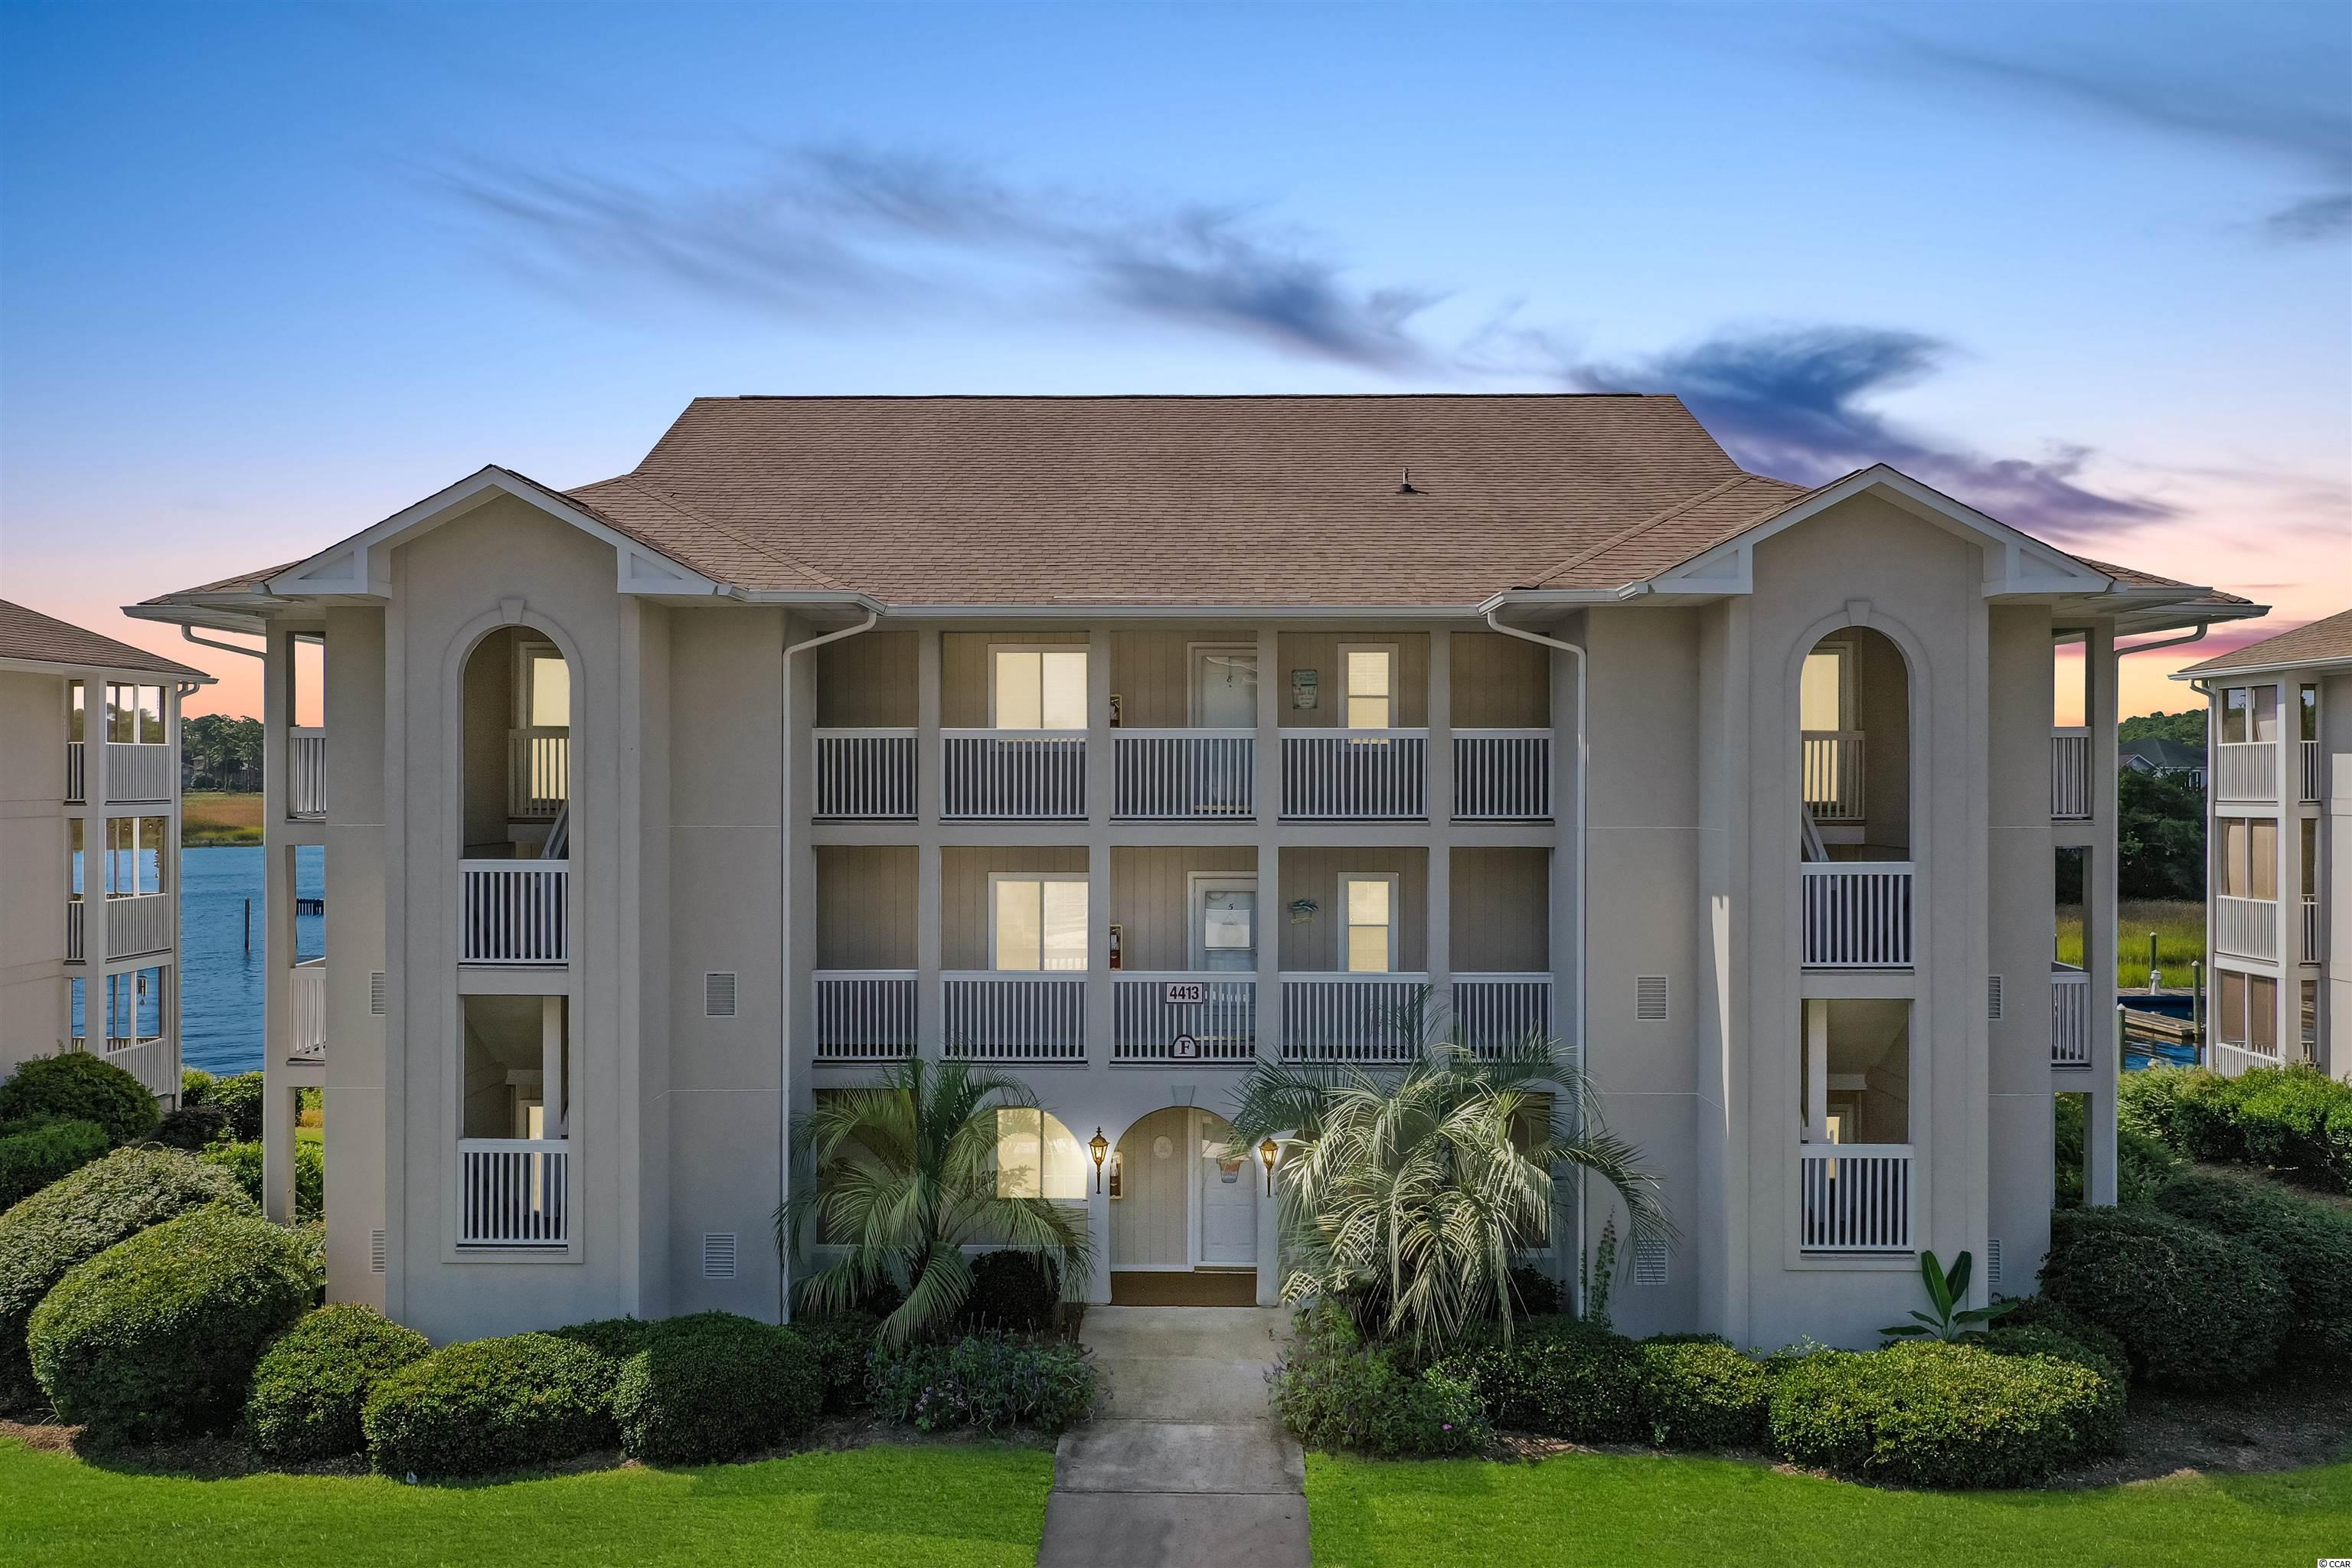 """This is the condo if you are seeking a turn-key, 2 bedroom, 2 bath unit with breathtaking views of the Intracoastal Waterway from the master bedroom & living room and where you can enjoy morning coffee or an afternoon drink on the screened balcony while watching the boats traverse the ICW.  Simply beautiful, tastefully decorated unit, with lots of light due to additional windows since it is an end unit.  Unit is in excellent shape with all the upgrades you could desire, with granite counters in kitchen & bathrooms, tumbled marble back splash with inlay in kitchen, vinyl plank wood flooring in all areas except kitchen and baths where there is tile.  Stainless appliances, new garbage disposal, upgraded light fixtures and bathroom fixtures, stackable washer/dryer and so much more and it comes furnished except for just a few decorative exclusions.  There is a private storage room for your beach chairs & toys directly across from your front door.  Development has wonderful amenities with a pool in Spinnaker Cove backing up to the golf course as well as access to the Eastport salt water pool, hot tub and gazebo.  If golfing is your forte, Eastport is a challenging course for you to try.  The Little River area is a well kept secret in that it affords you access to the beach within 10 minutes, boating in 5 minutes and close proximity to wonderful restaurants, shopping and attractions as well as being host to several festivals each year.  So don't wait long before taking a look at this """"perfect place near the beach"""" or someone will have already bought it!  All you need are your flip flops, bathing suit, a few clothes and some toiletries and it will be home.  Marina is privately owned and not available to Spinnaker Cove owners."""